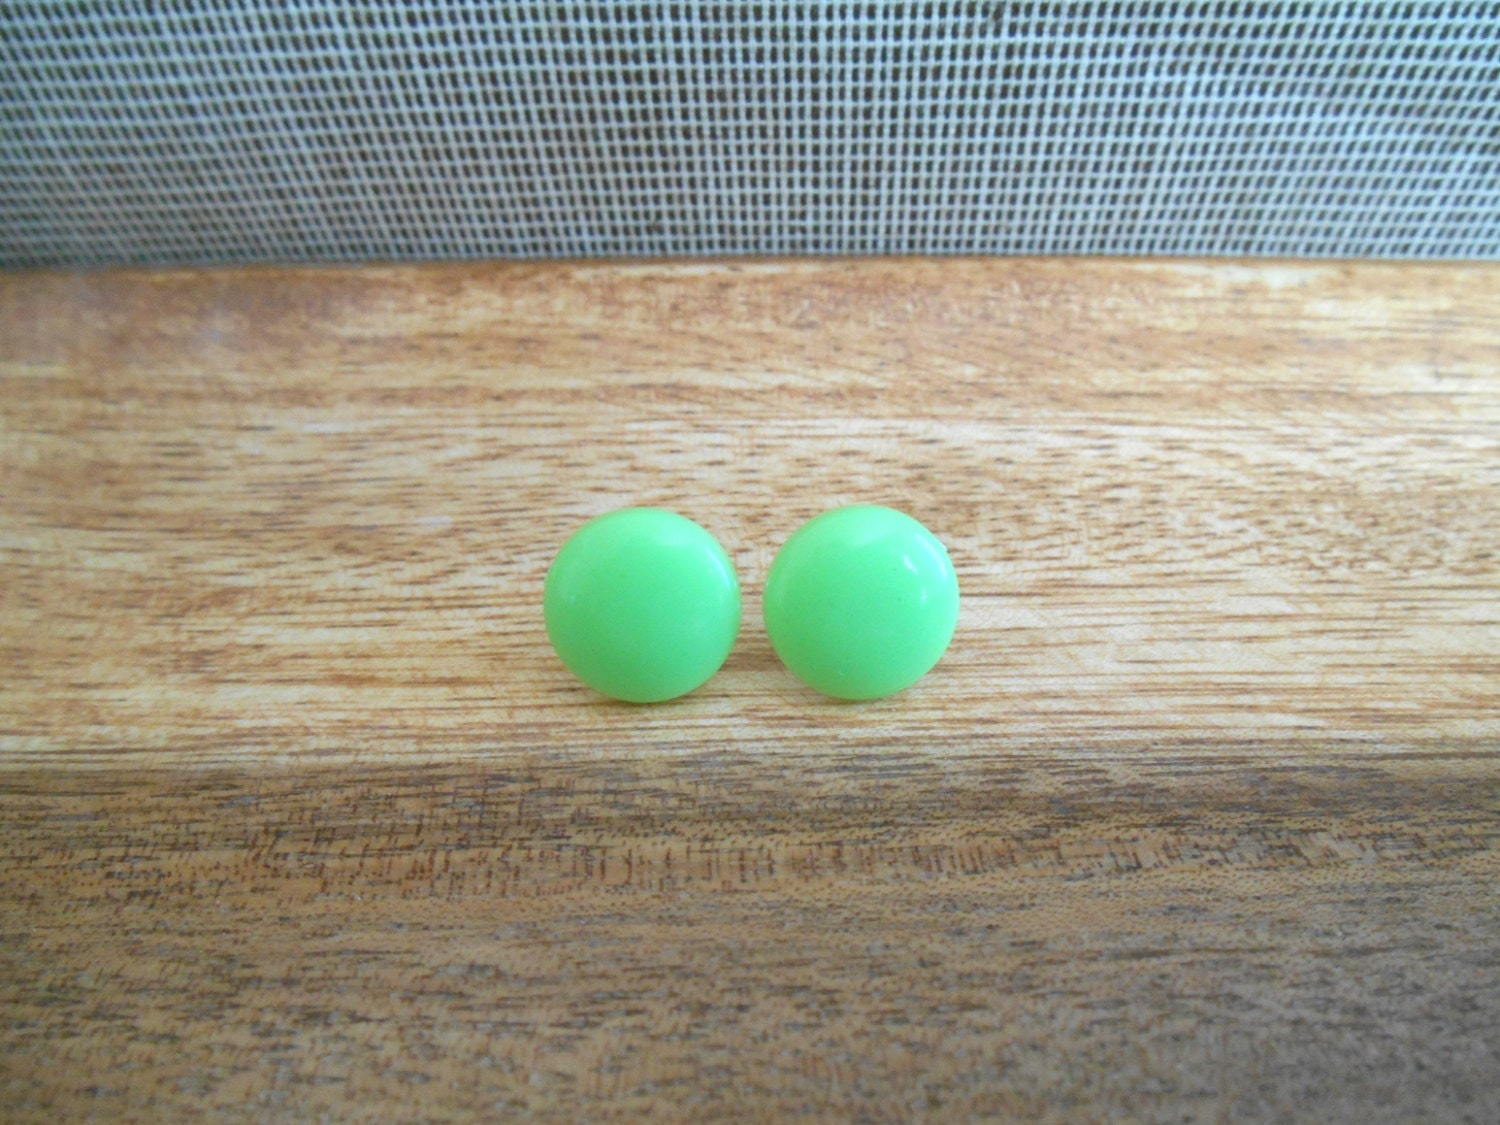 Yellow Green Stud Earrings - Yellow Green Round Earrings - Yellow Green Button Earrings - Yellow Green Circle Studs - ribbonday